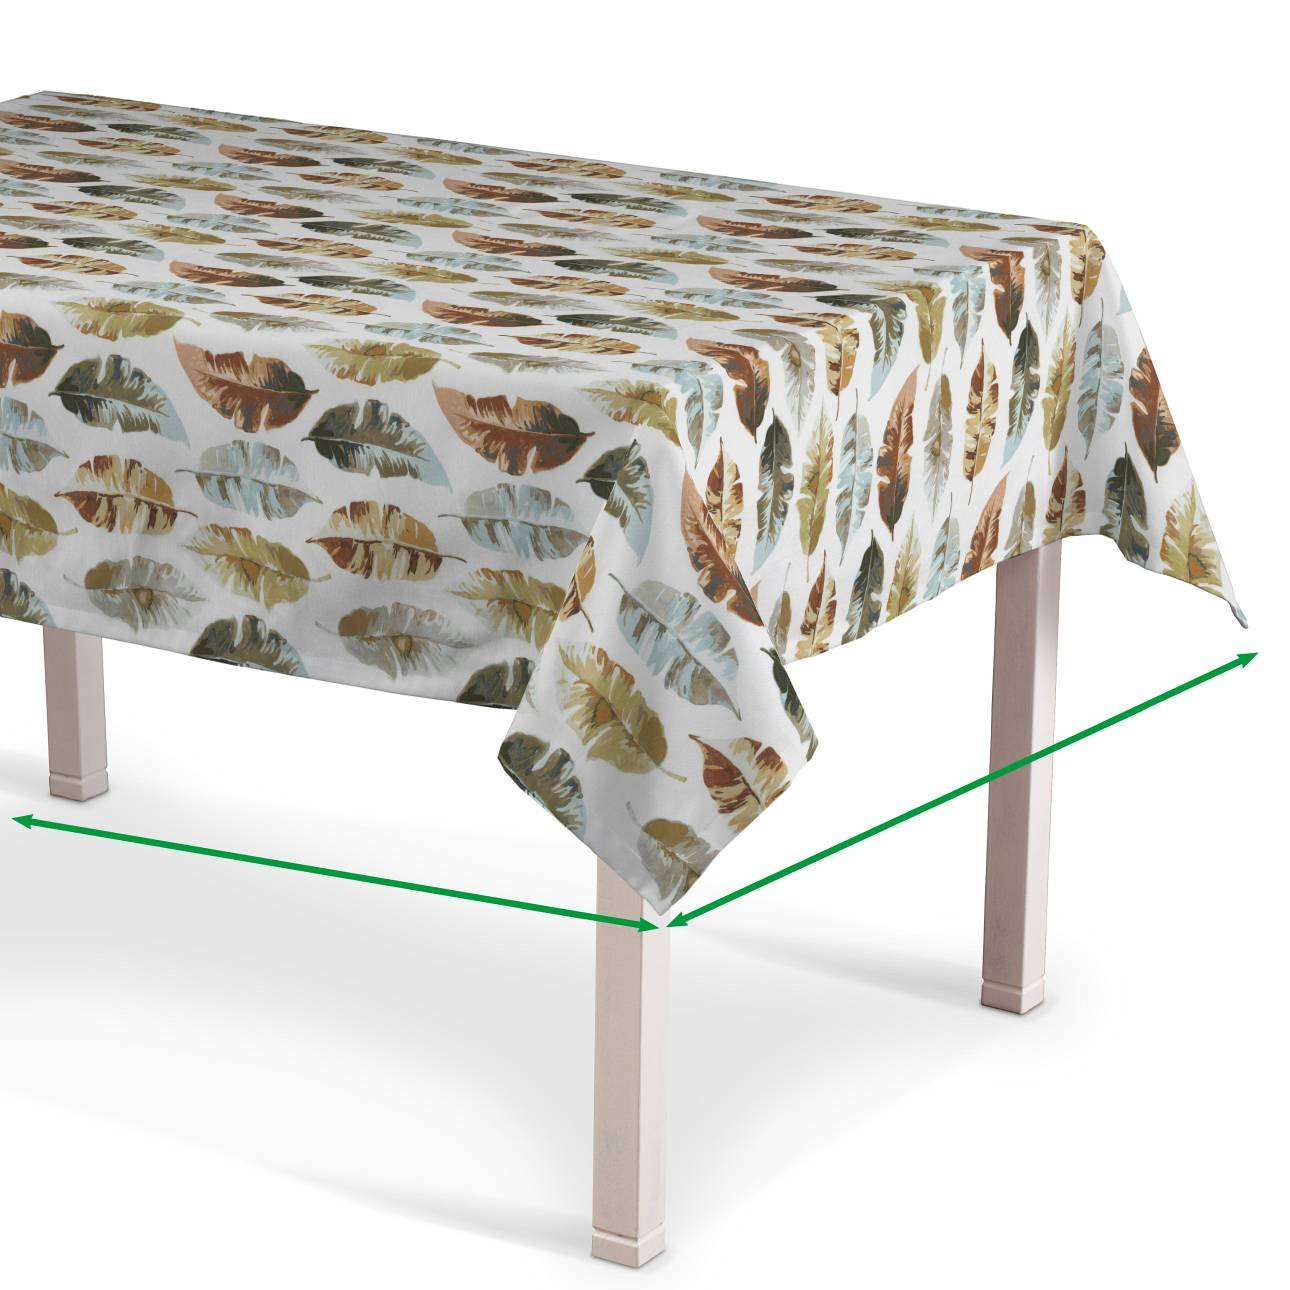 Rectangular tablecloth in collection Urban Jungle, fabric: 141-43